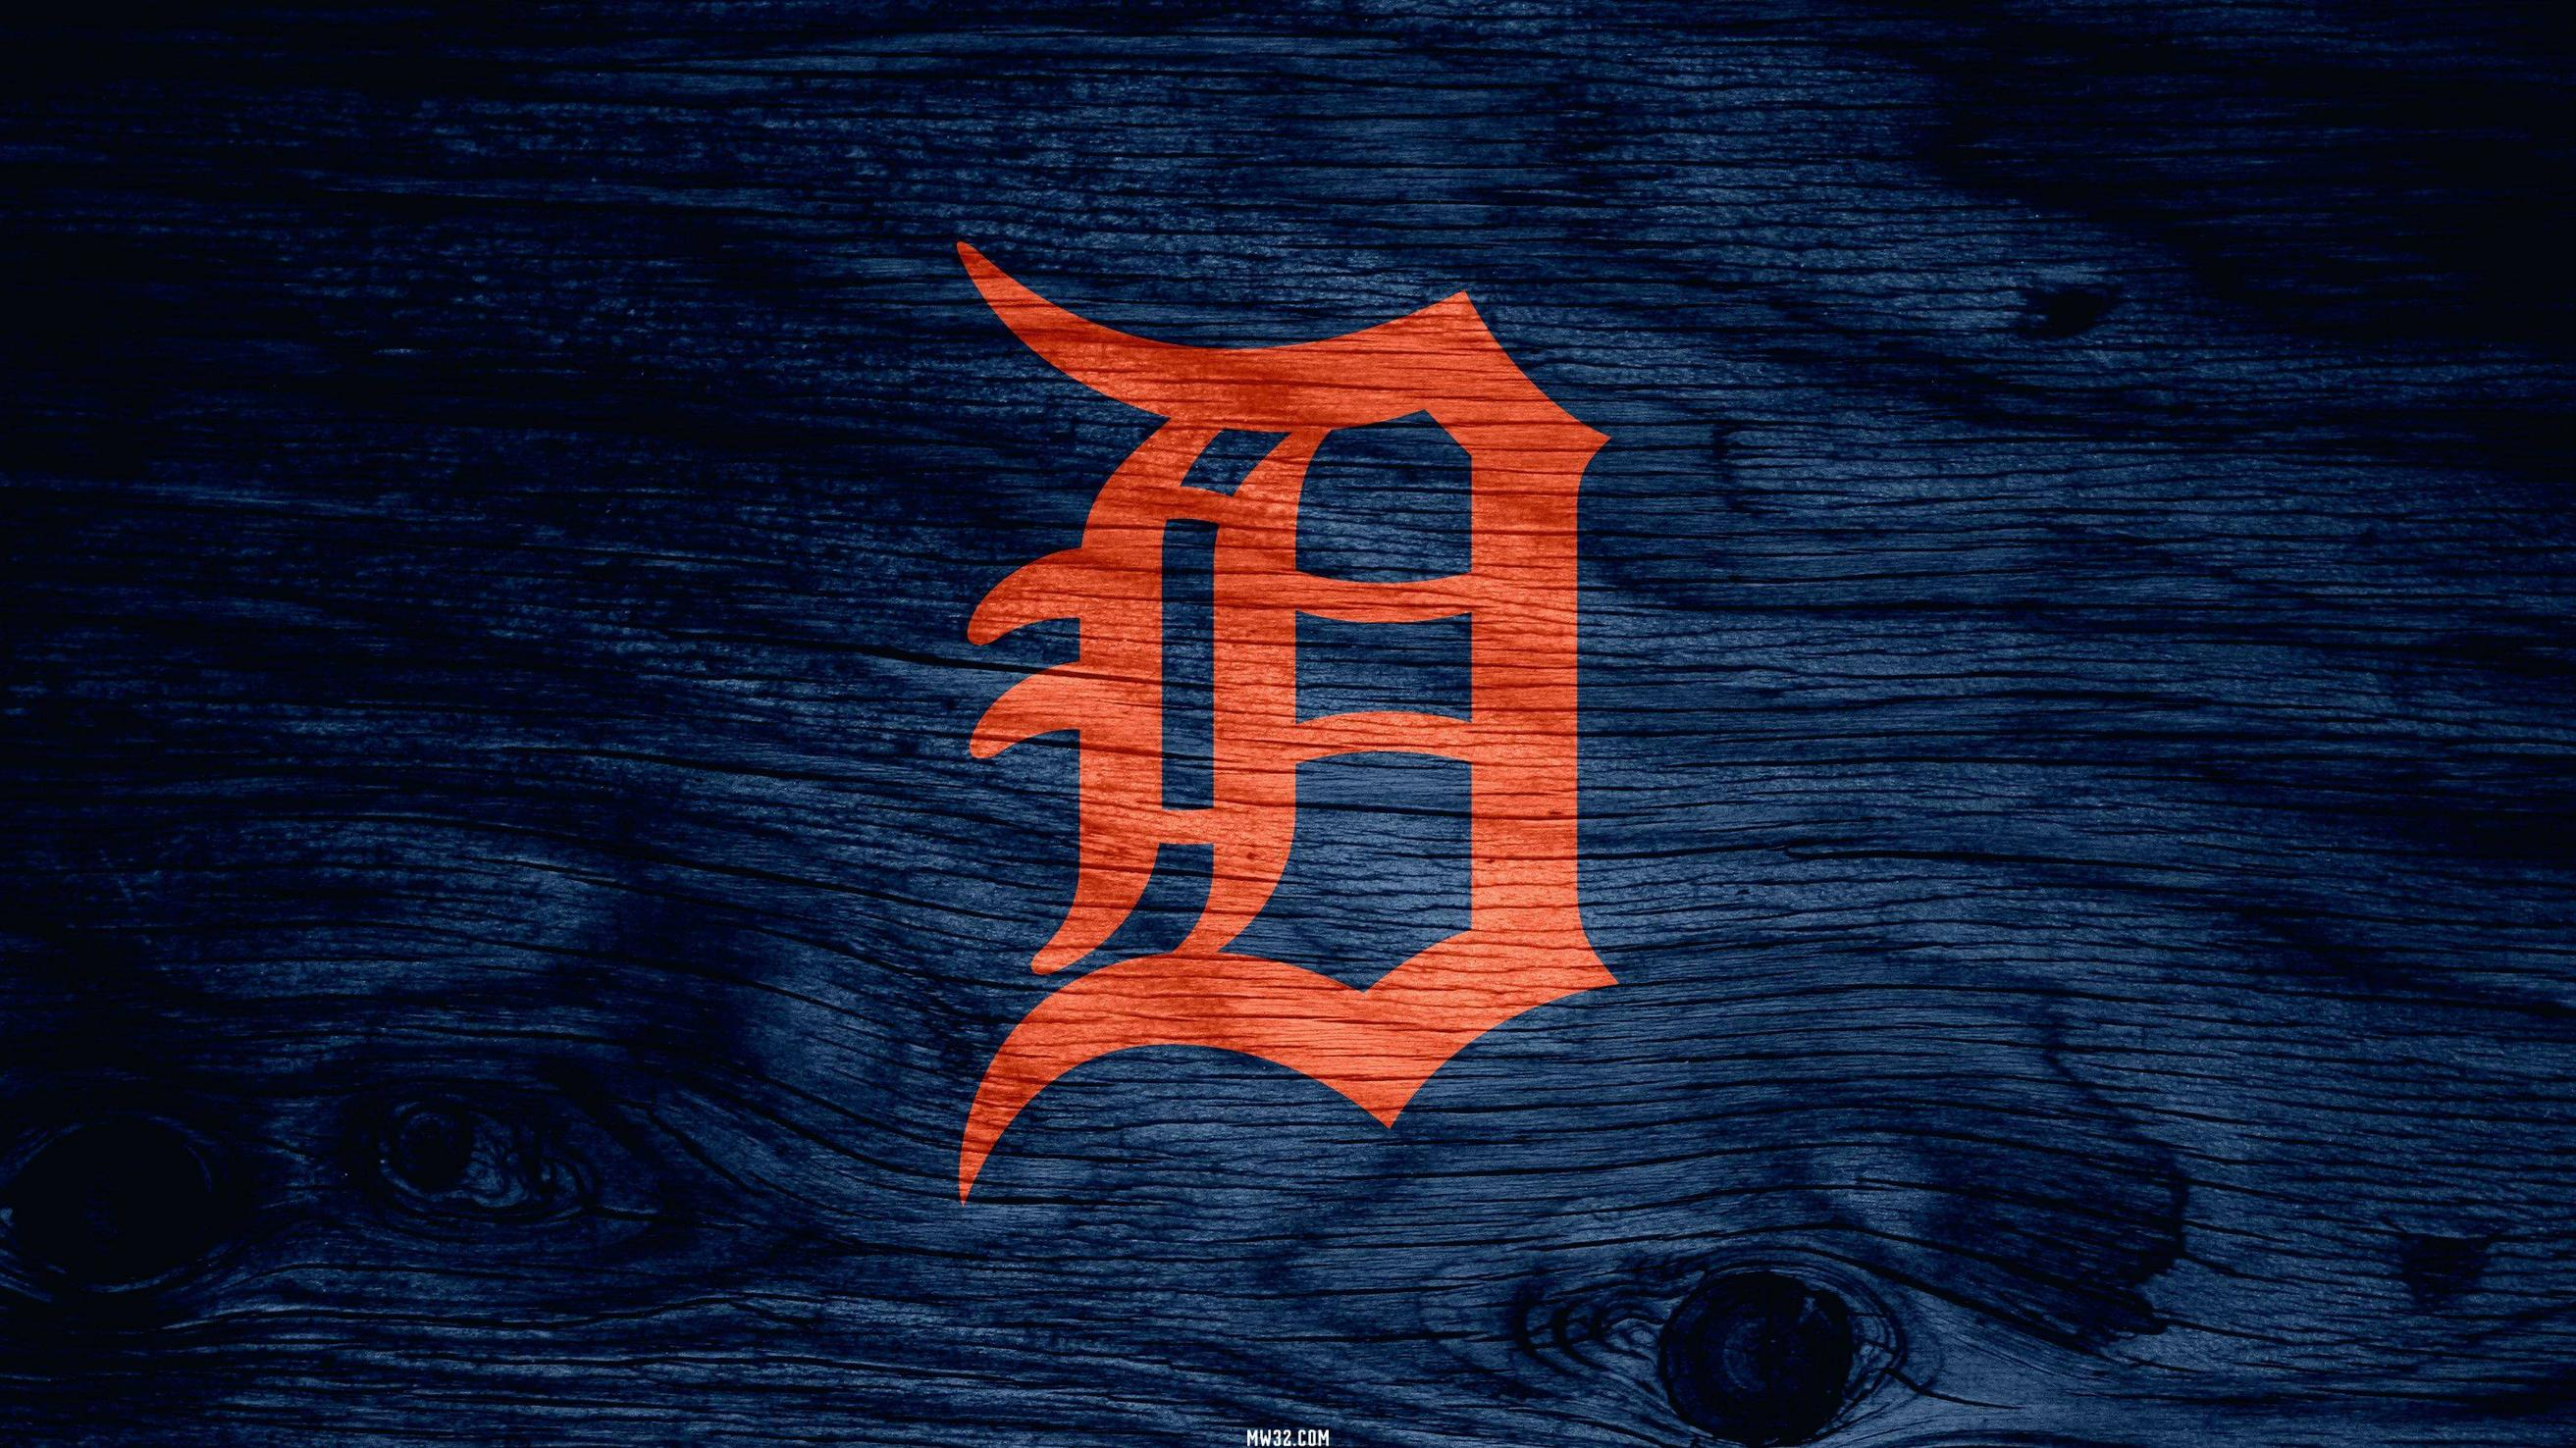 2625x1476 - Detroit Tigers Wallpapers 1